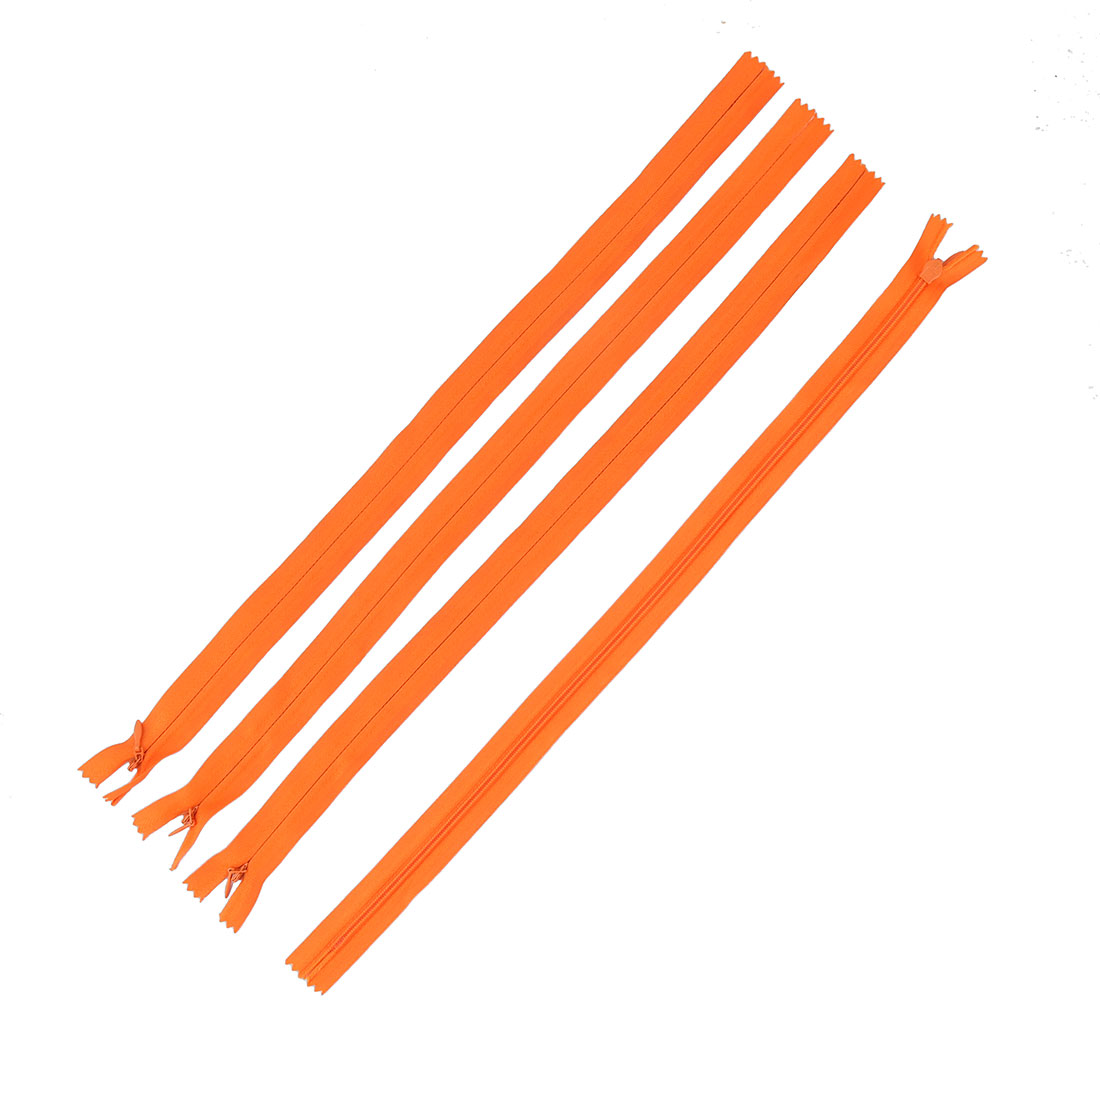 Tailor Sewer Nylon Invisible Zippers Sewing Tool Orange 40cm Length 4PCS